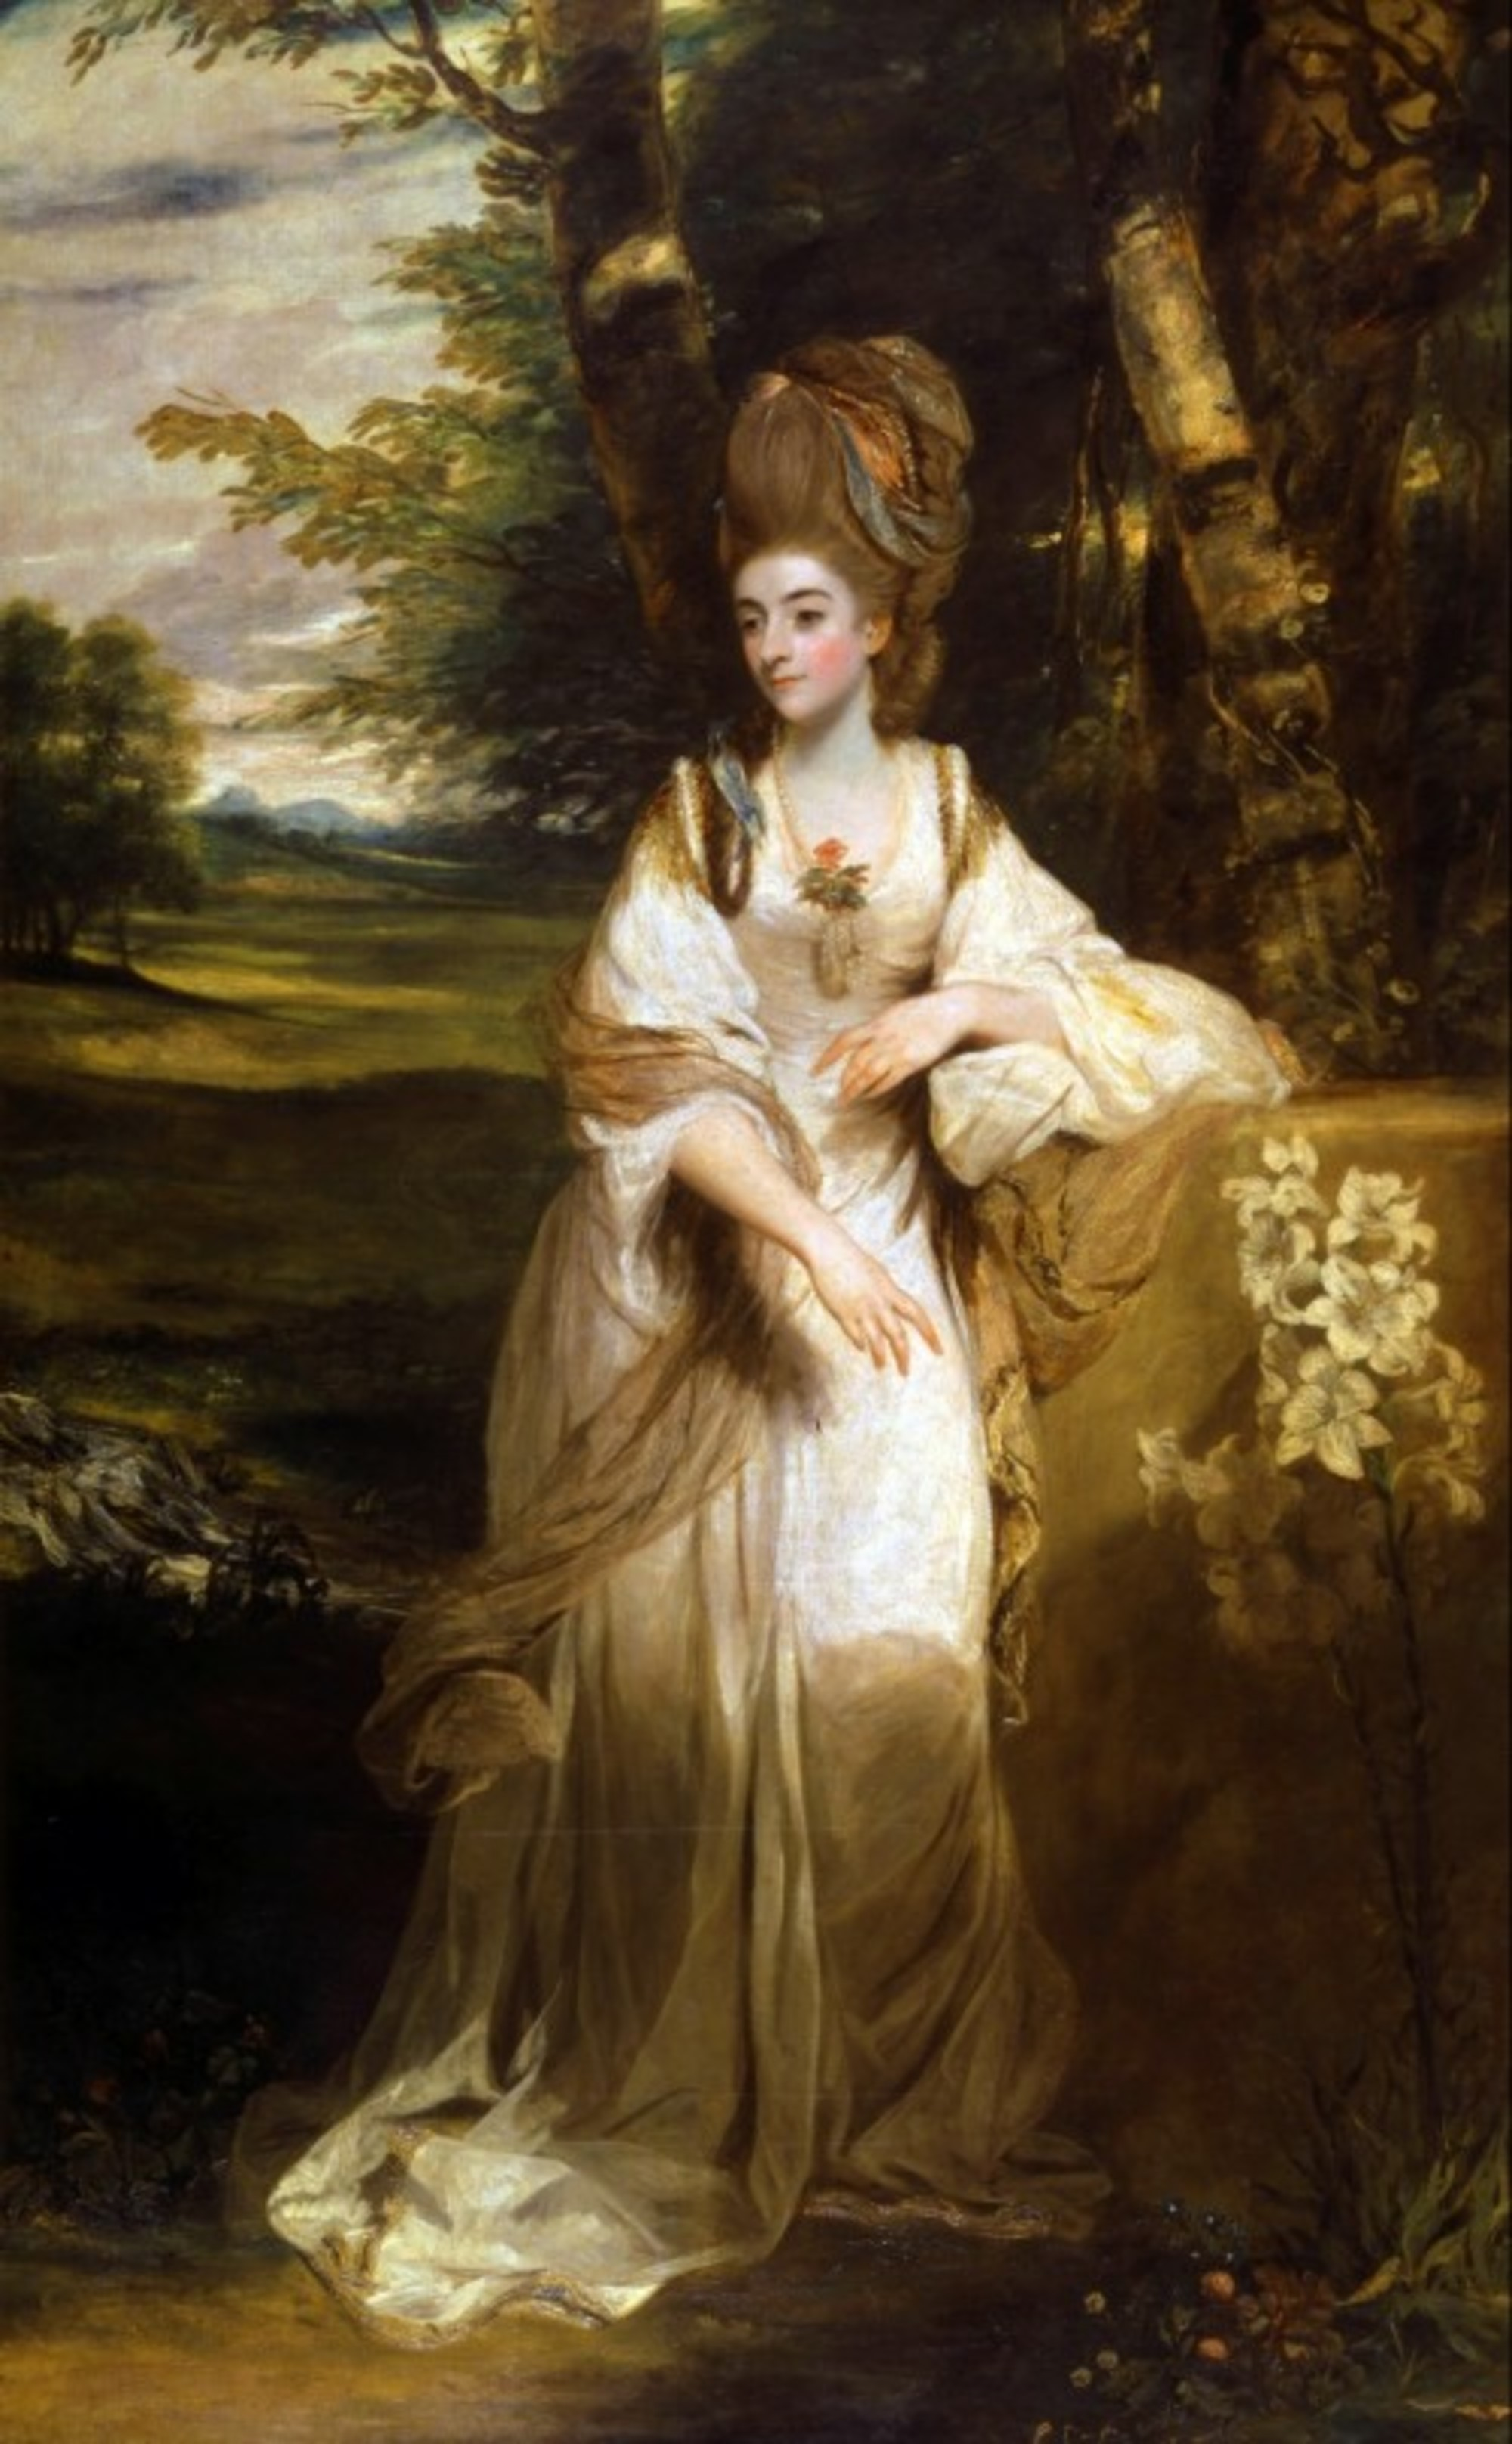 Sir-Joshua-Reynolds---Lady-Bampfylde-Tate-Britain.jpg